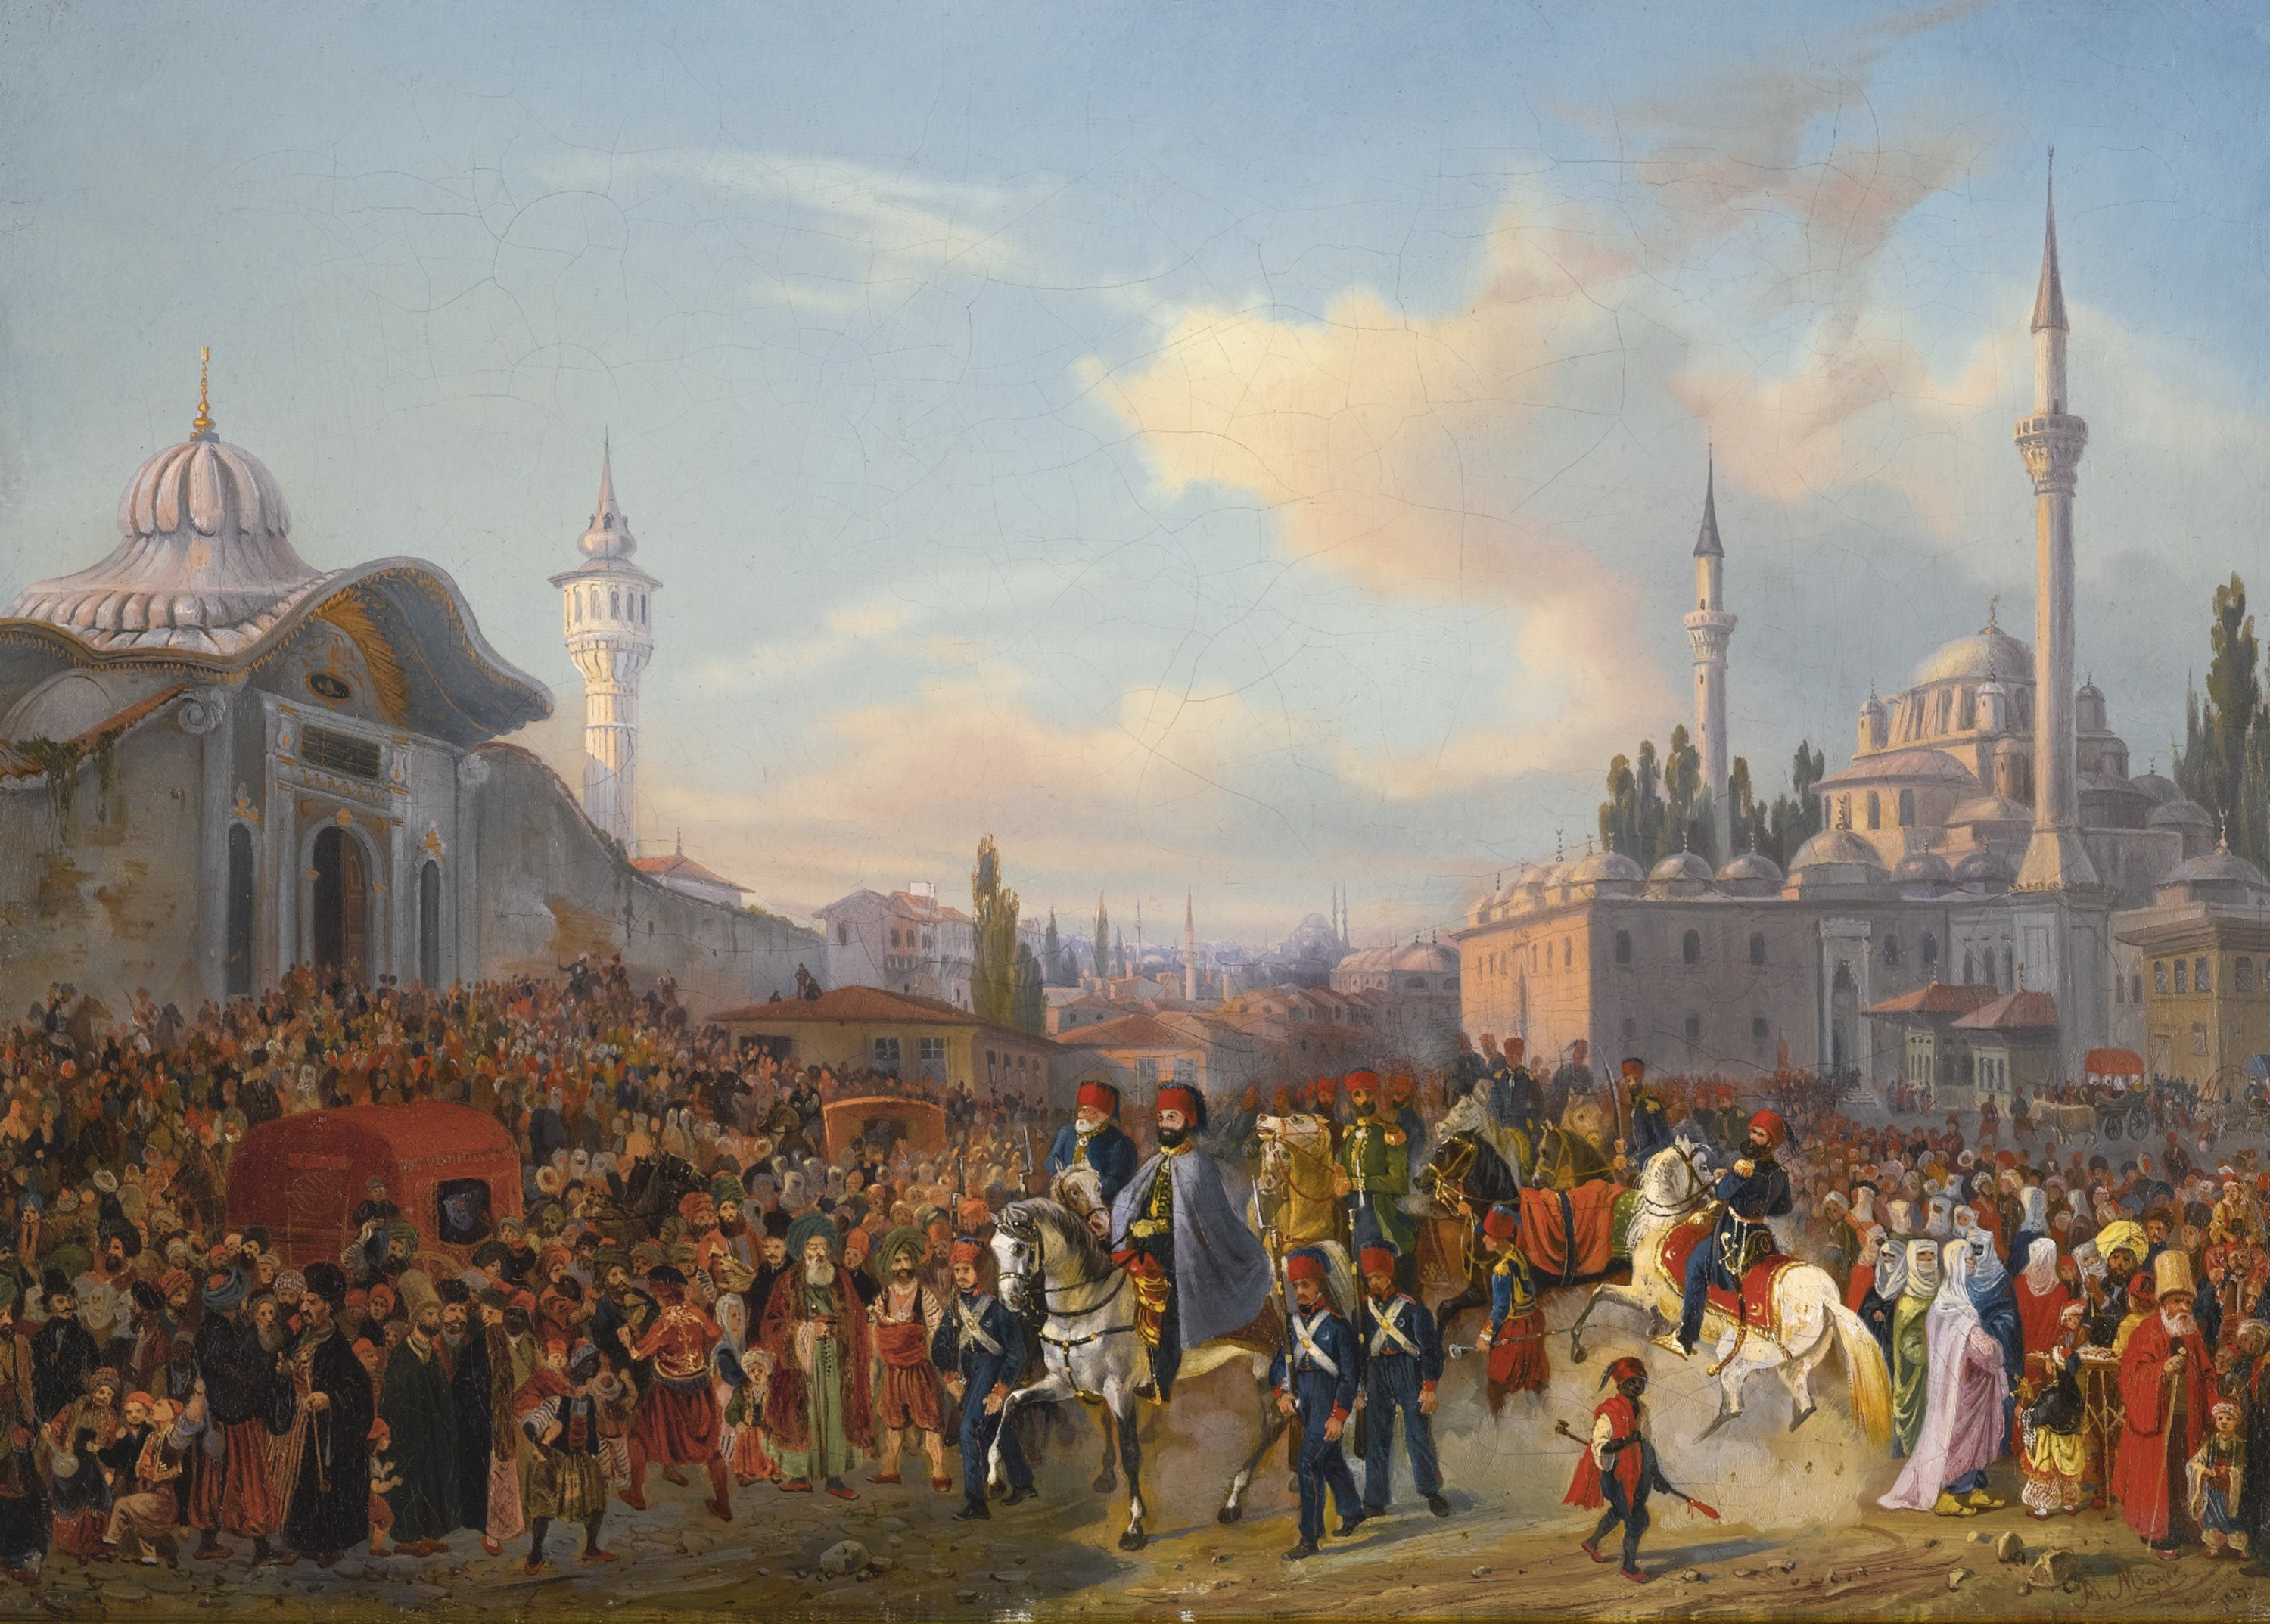 French painter Auguste Etienne François Mayer's (1805-1890) artwork showing Ottoman Sultan Mahmud II leaving Istanbul's iconic Bayezid Mosque in 1837. (Photo by Getty Images)